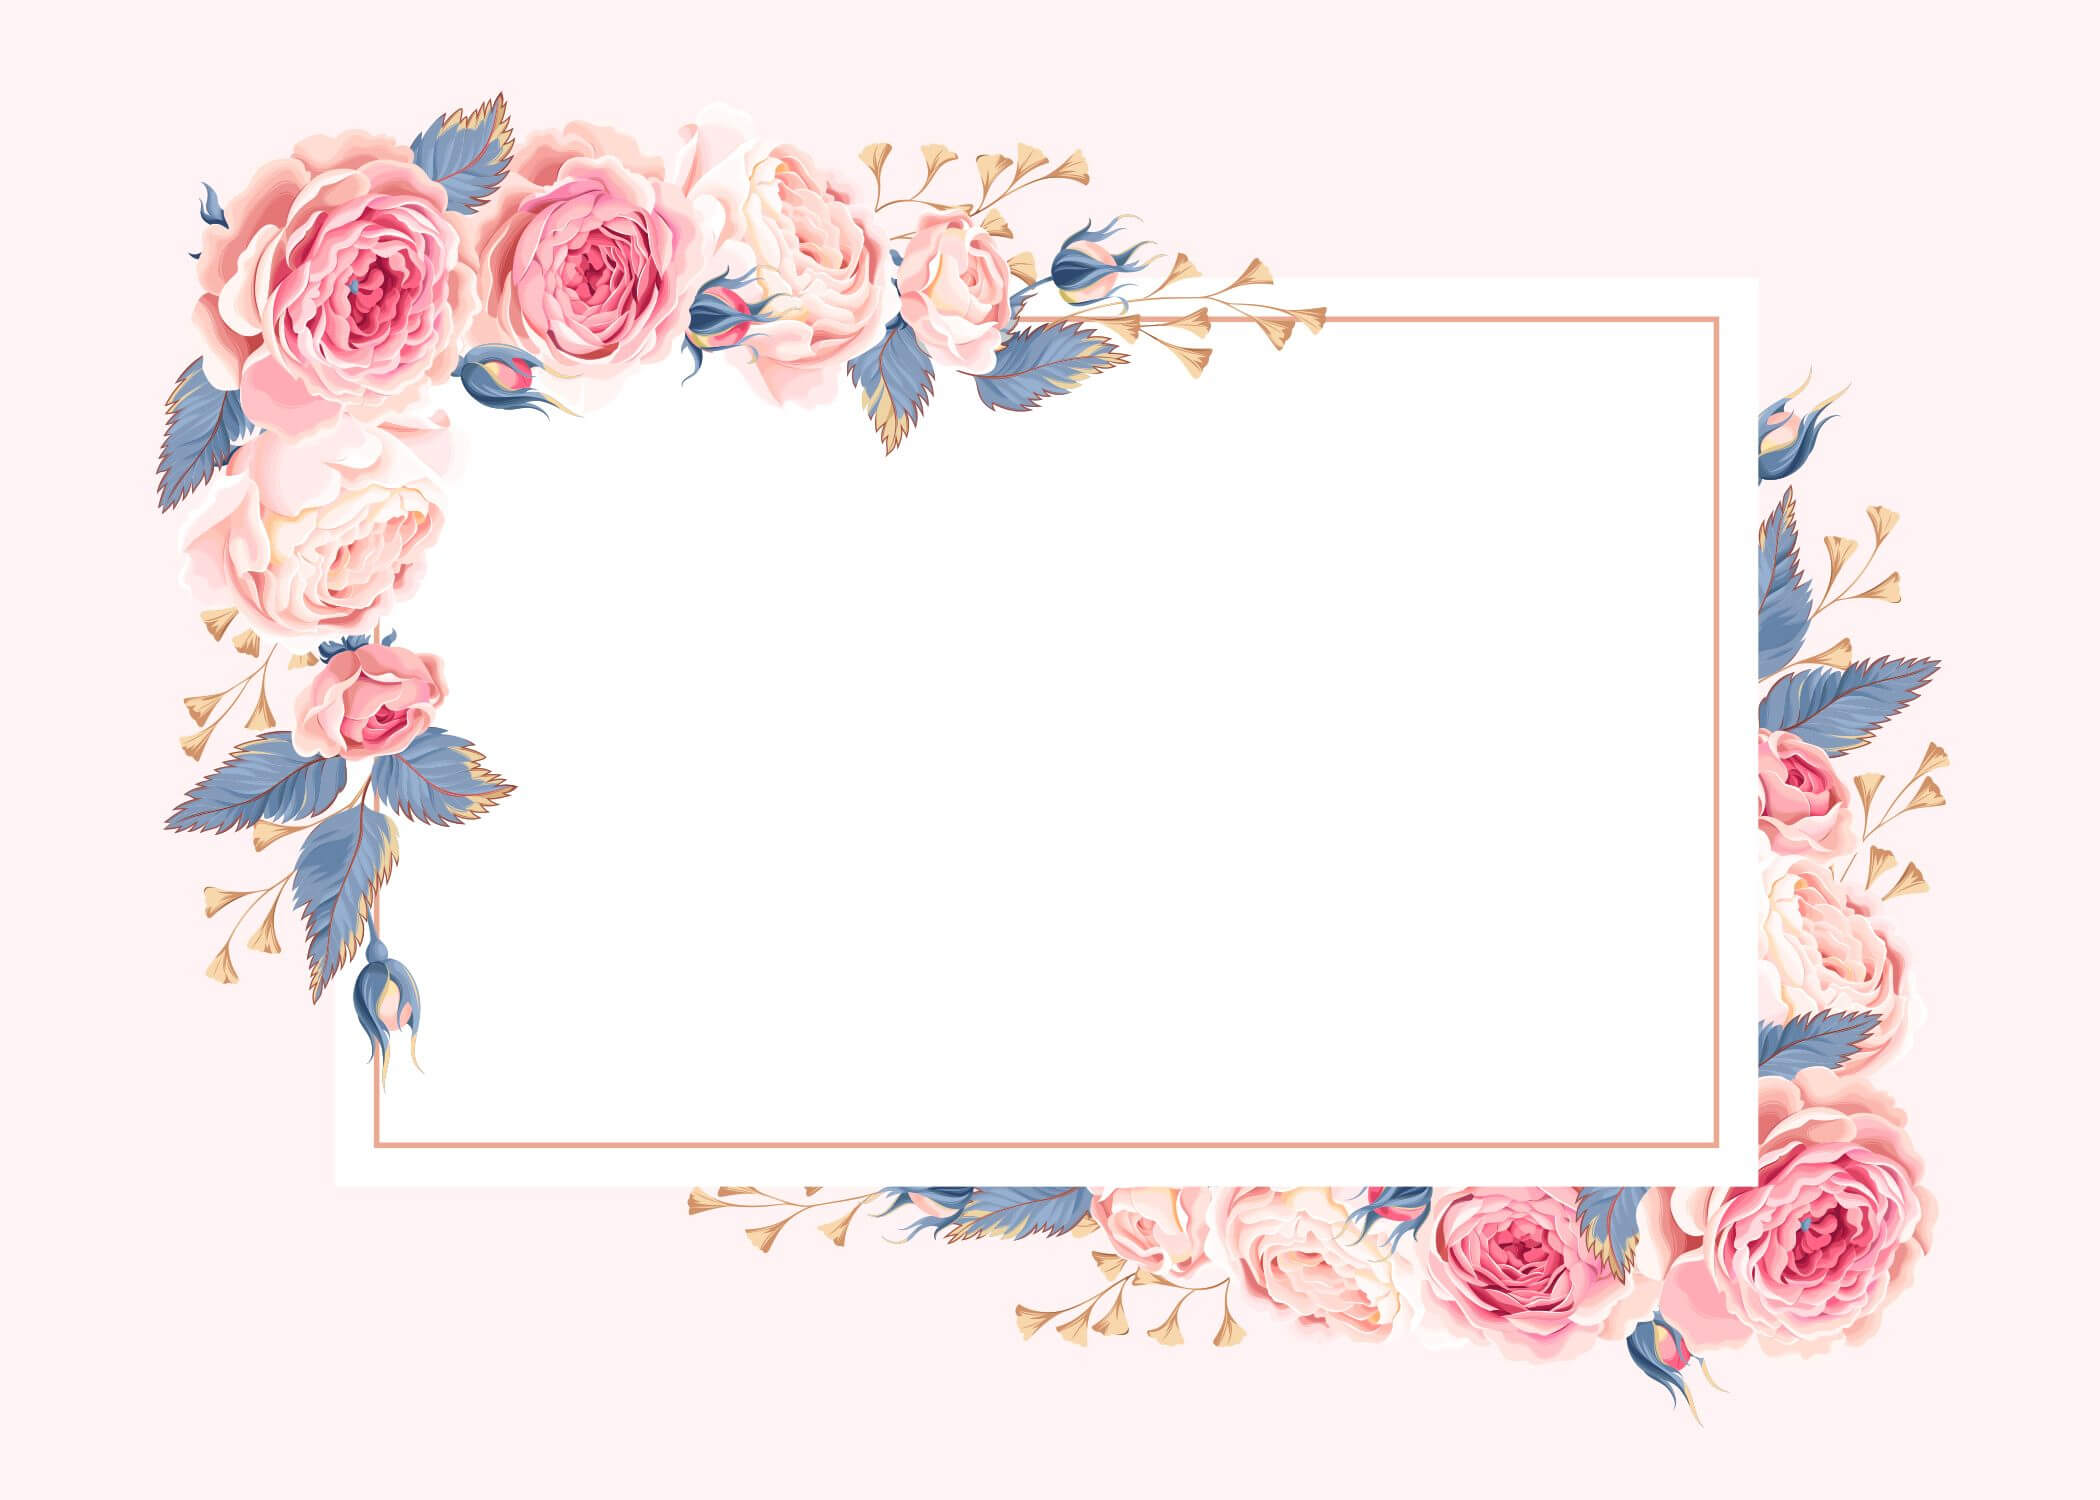 Climbing Roses - Rsvp Card Template (Free In 2020 Inside Free Printable Blank Greeting Card Templates